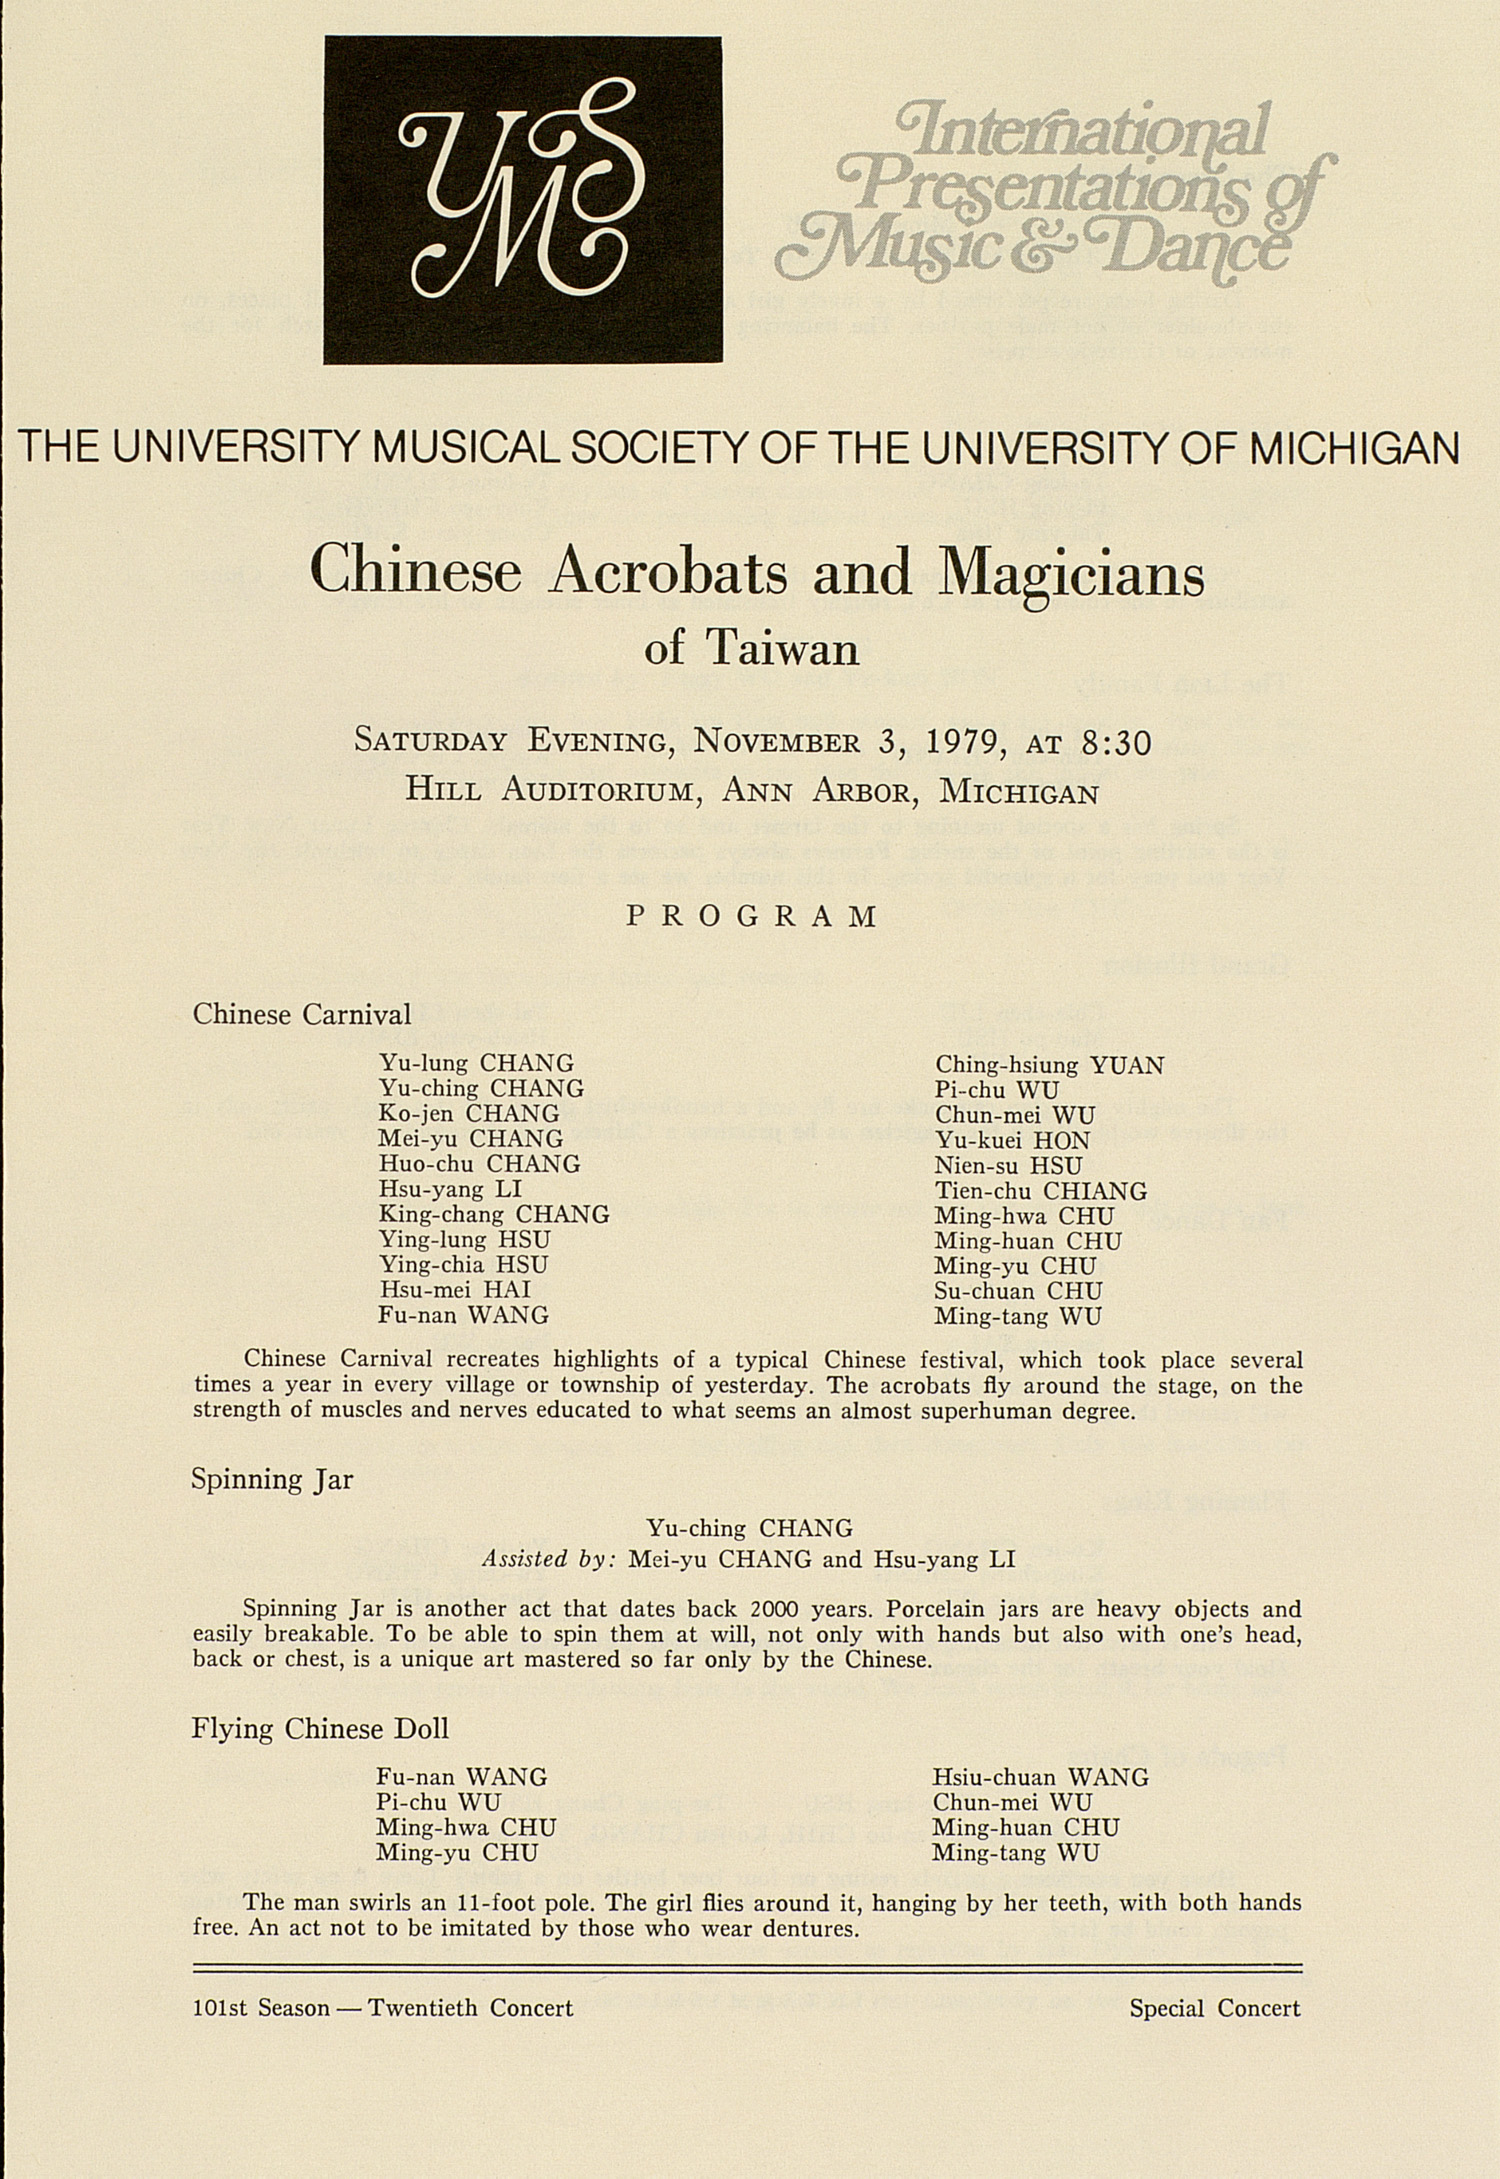 UMS Concert Program, November 3, 1979: Chinese Acrobats And Magicians --  image